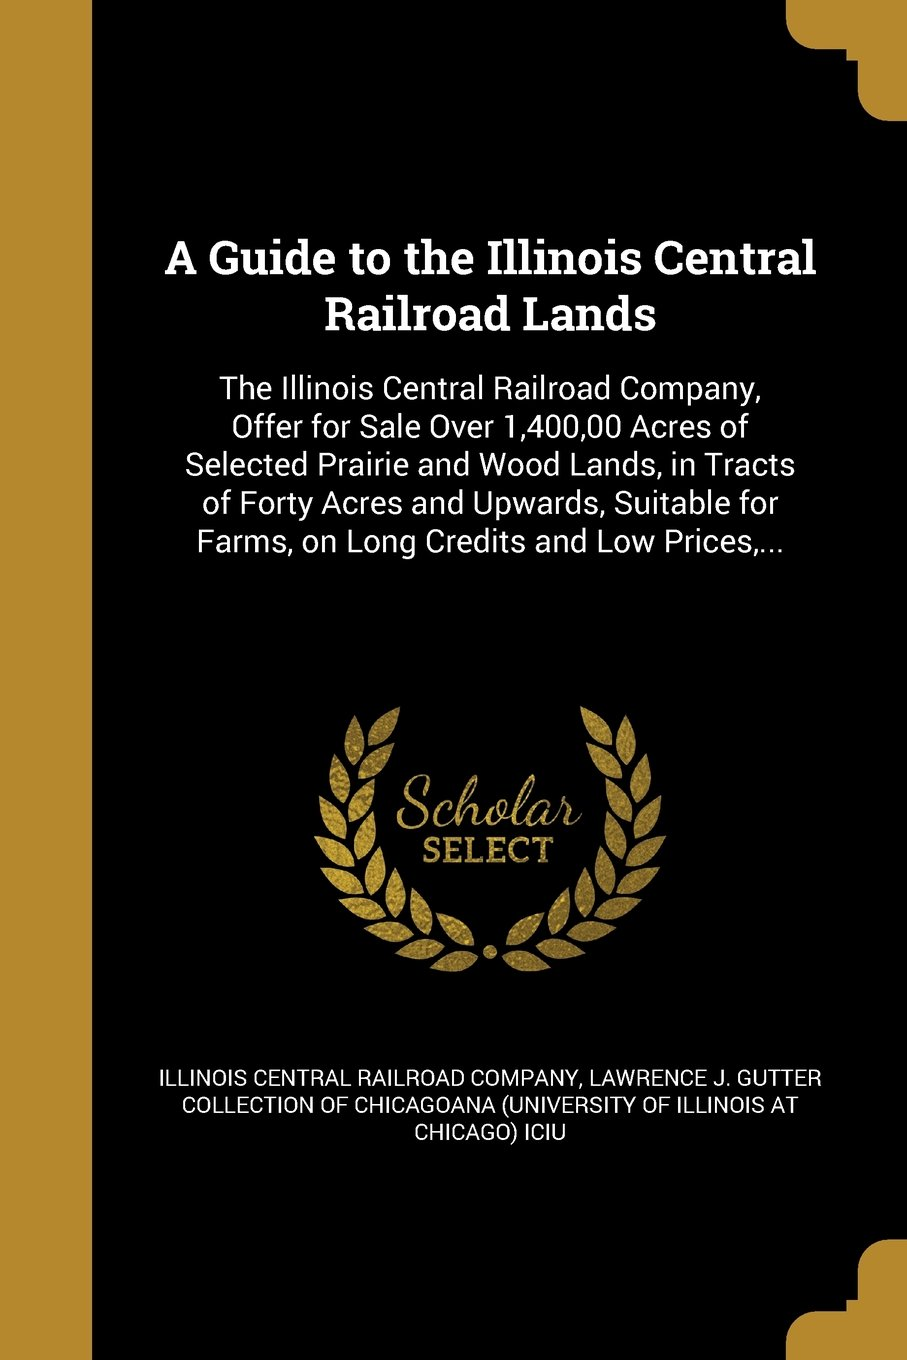 Download A Guide to the Illinois Central Railroad Lands: The Illinois Central Railroad Company, Offer for Sale Over 1,400,00 Acres of Selected Prairie and Wood ... Farms, on Long Credits and Low Prices, ... pdf epub